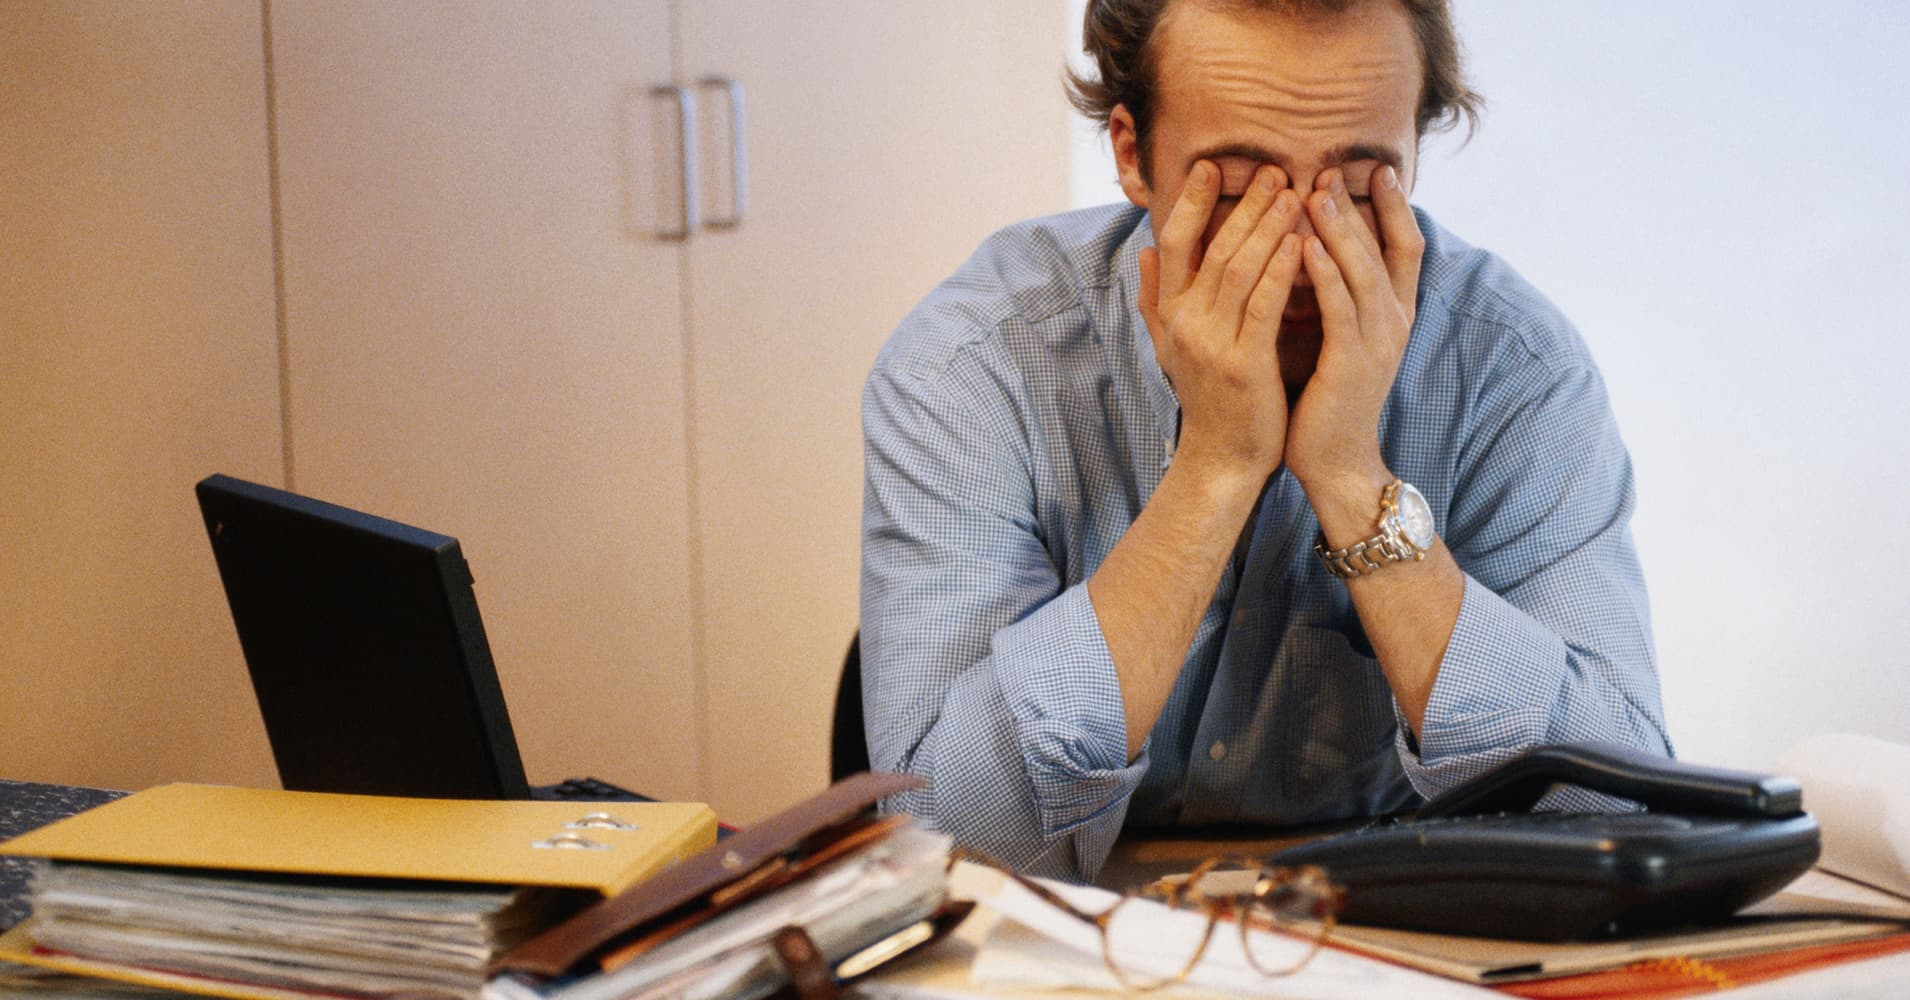 Most American workers are stressed most of the time